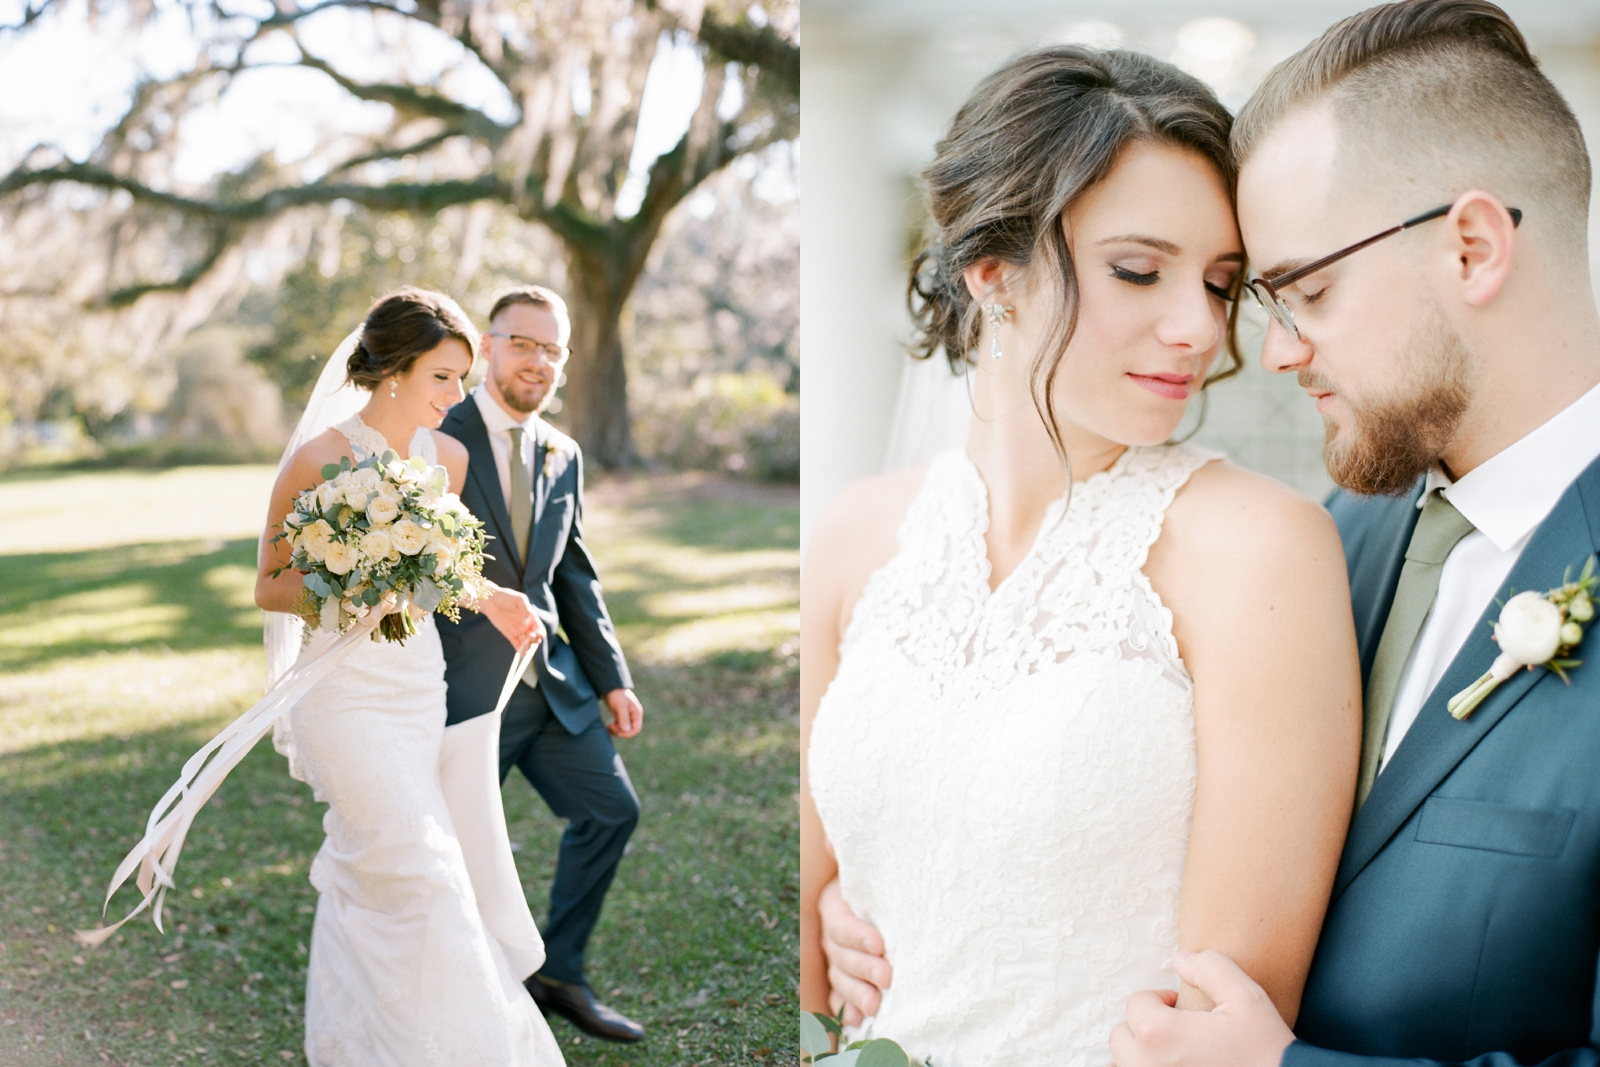 goodwood museum tallahassee wedding photographer - tallahassee florida - shannon griffin_0020.jpg